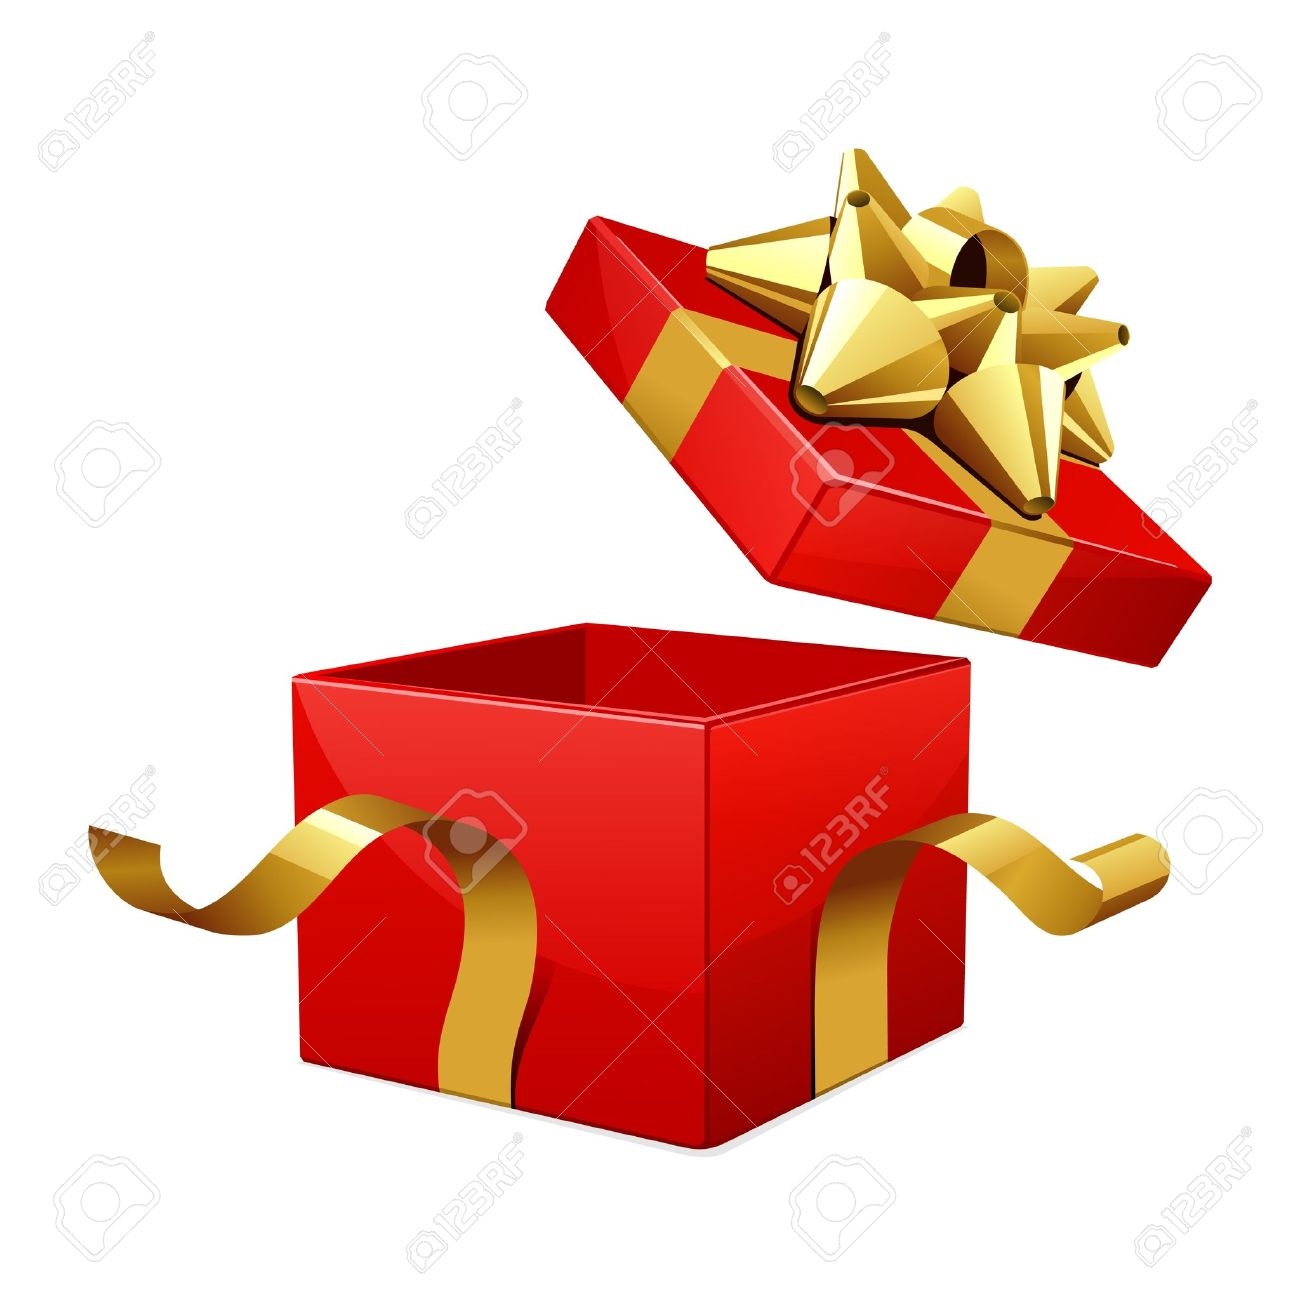 open present clipart. vector open red gift box with glossy gold bow stock 10553521 present clipart